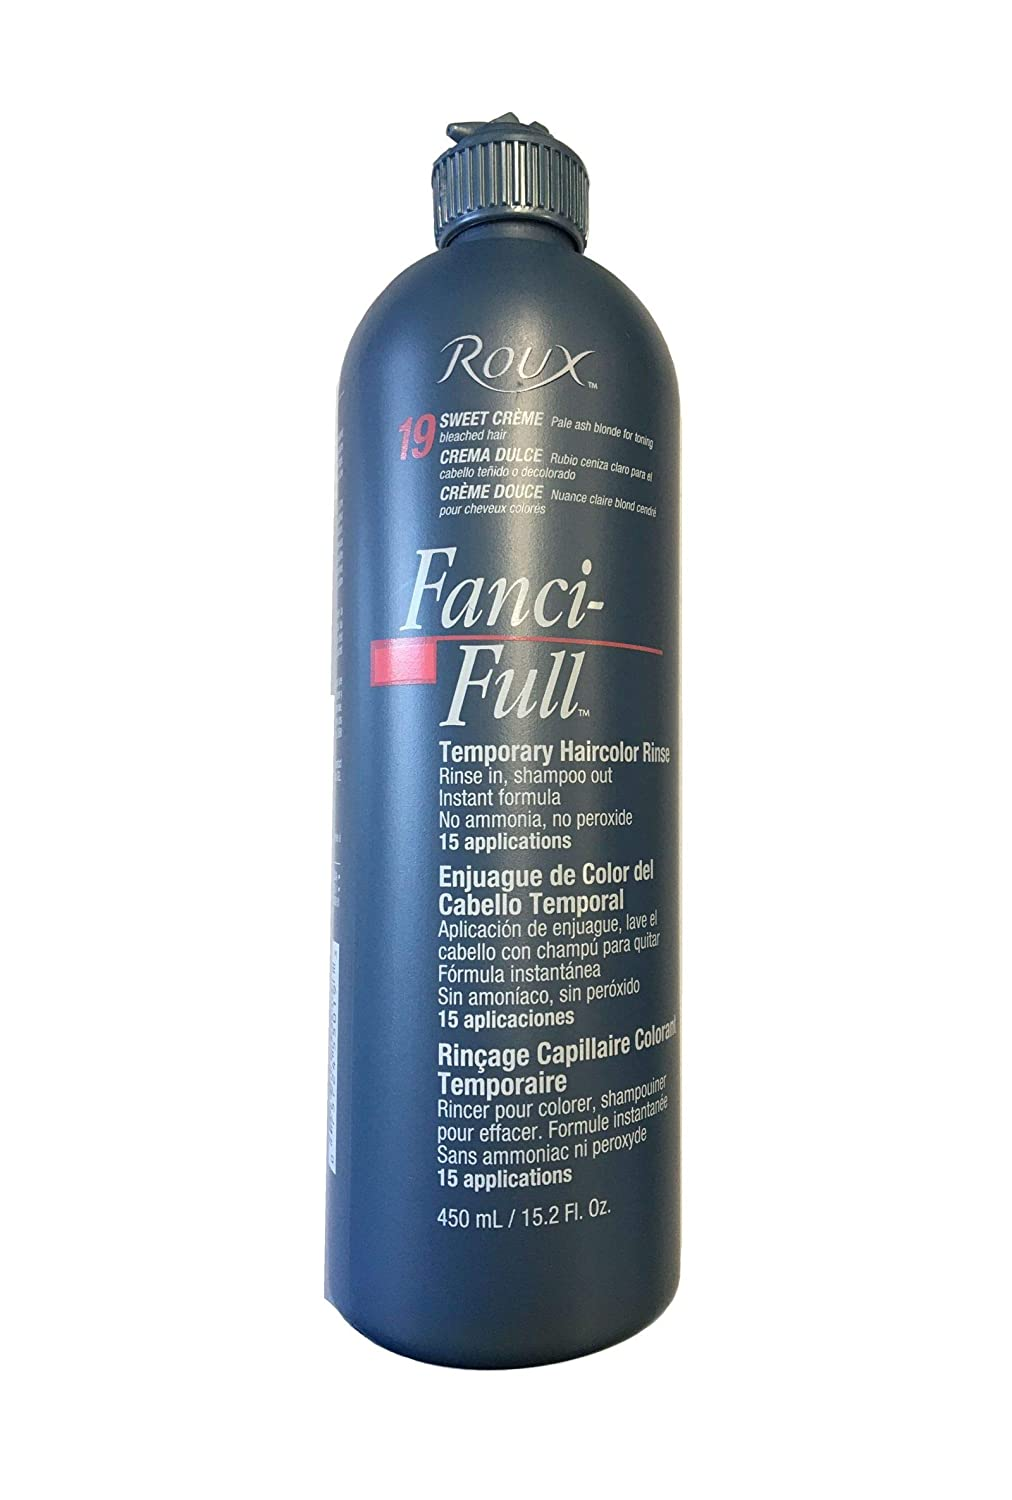 Roux Fanci-full Rinse #19 Sweet Cream 15.2 oz (Packaging May Vary)